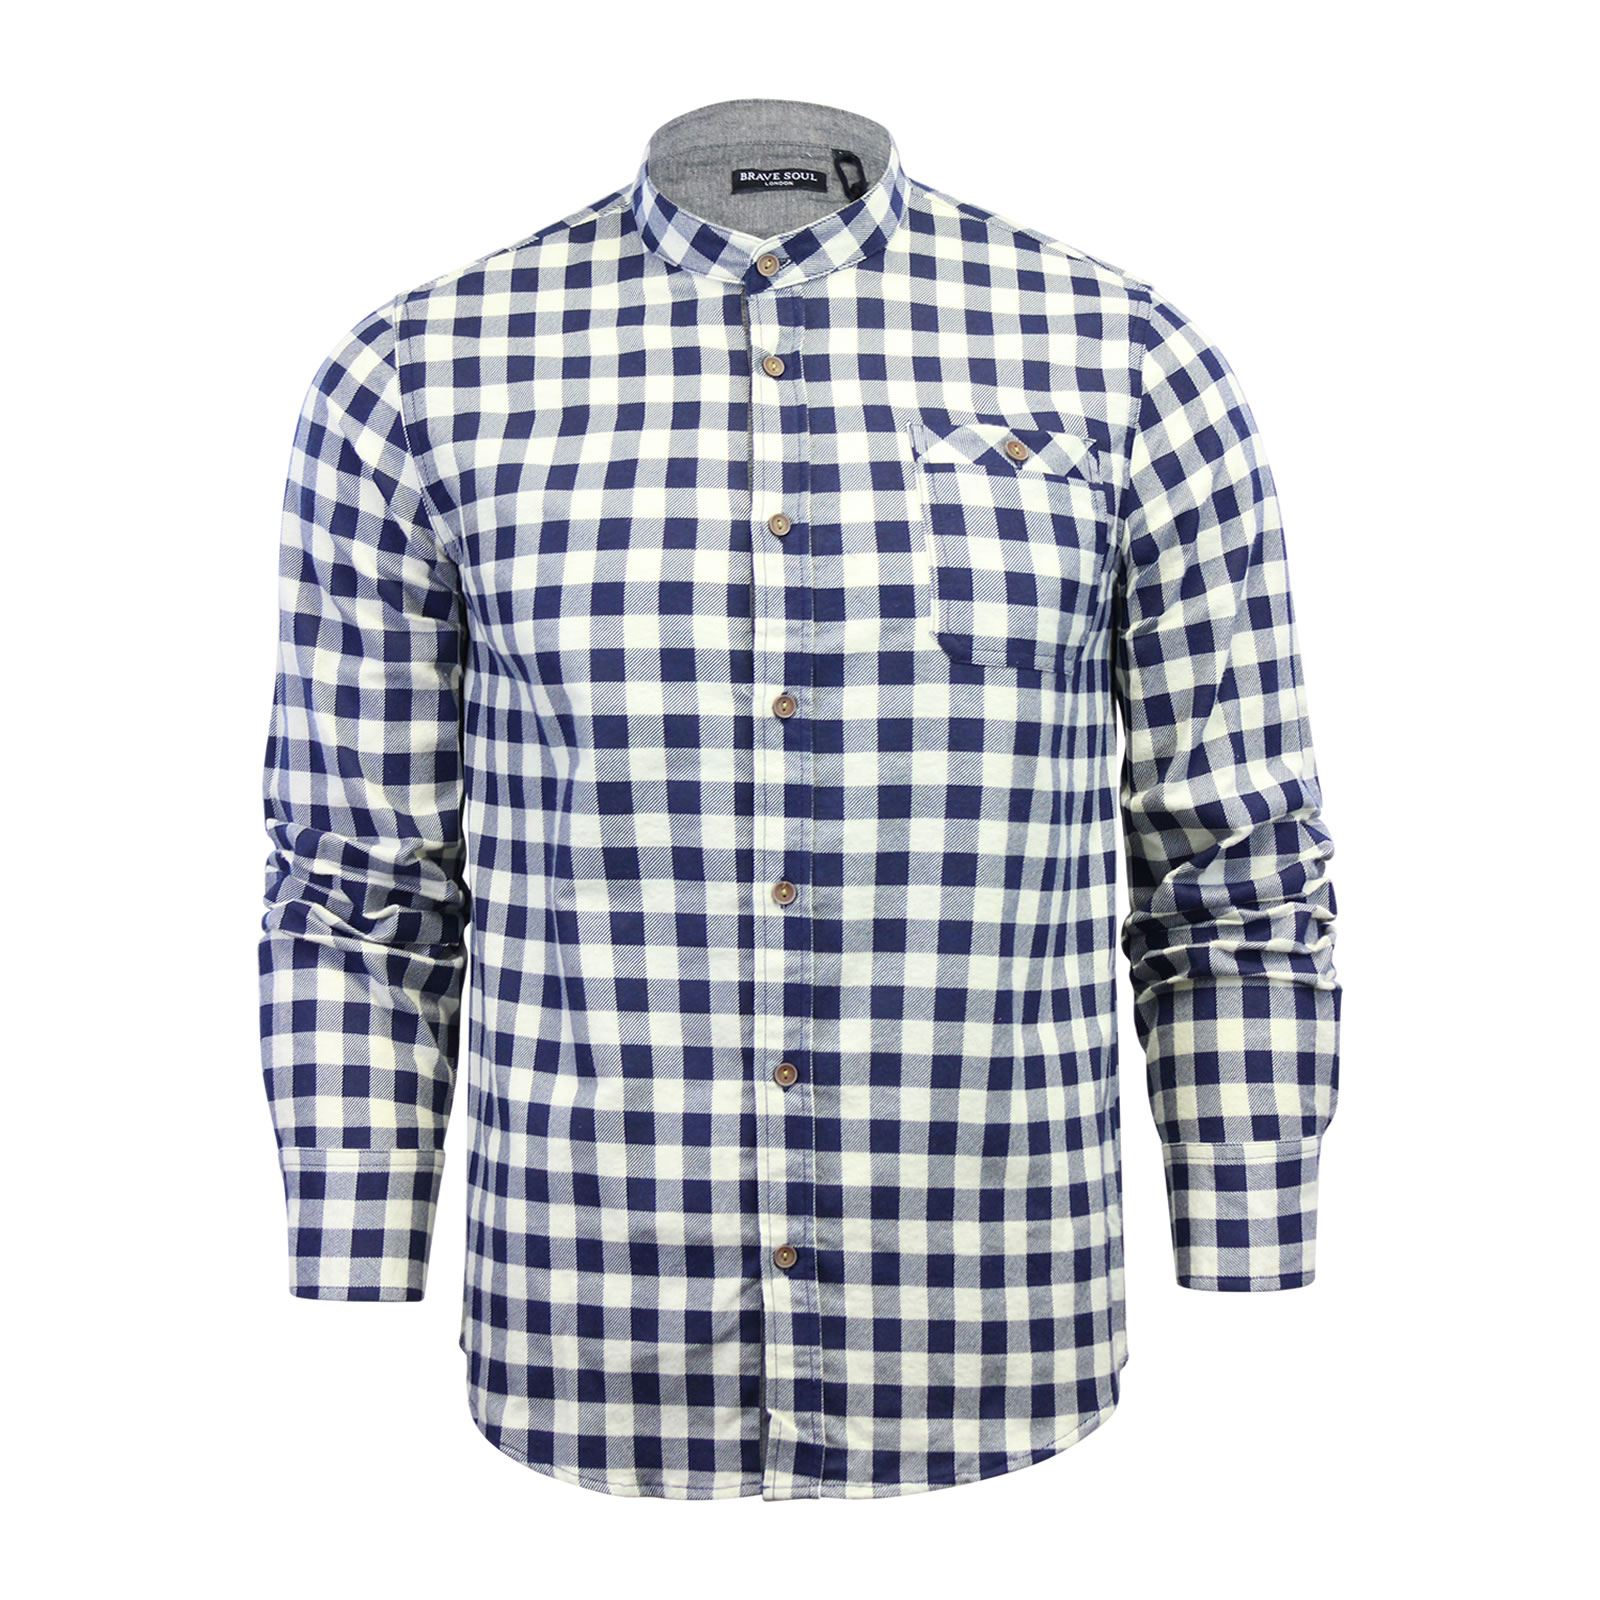 Brave-Soul-Mens-Check-Shirt-Flannel-Brushed-Cotton-Long-Sleeve-Casual-Top thumbnail 77